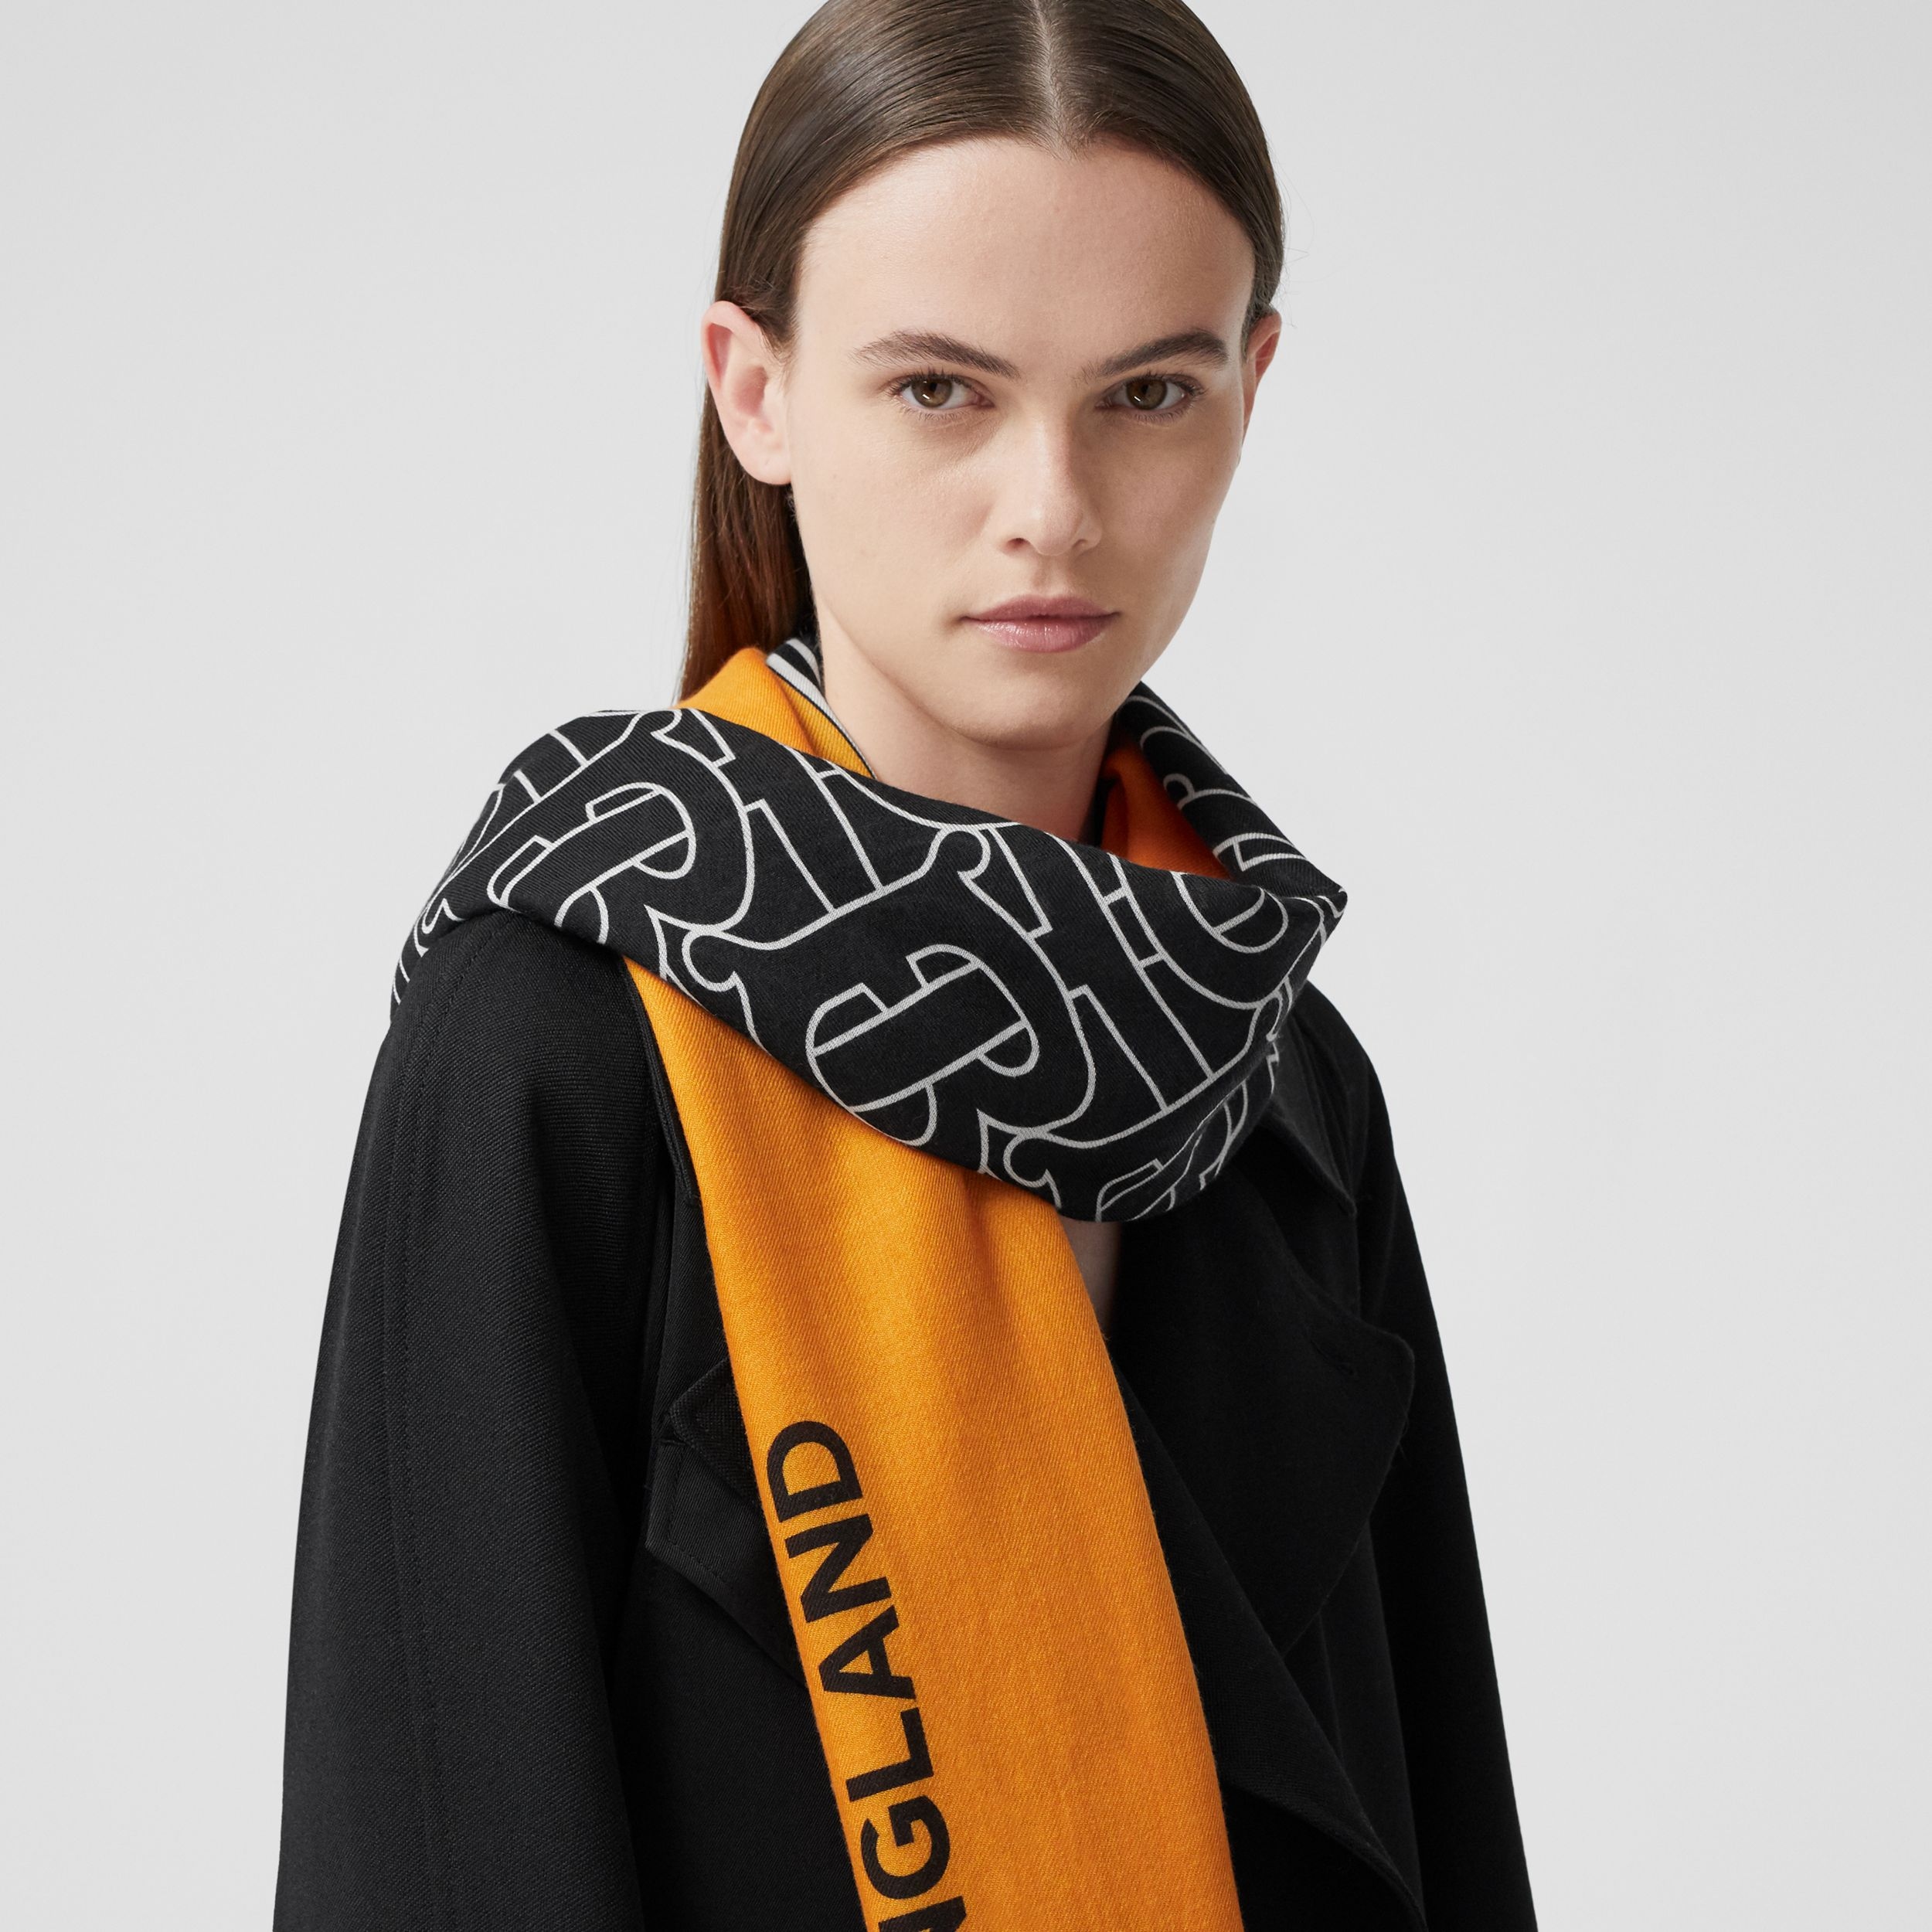 Monogram Print Striped Lightweight Cashmere Scarf in Citrus Yellow | Burberry United Kingdom - 3